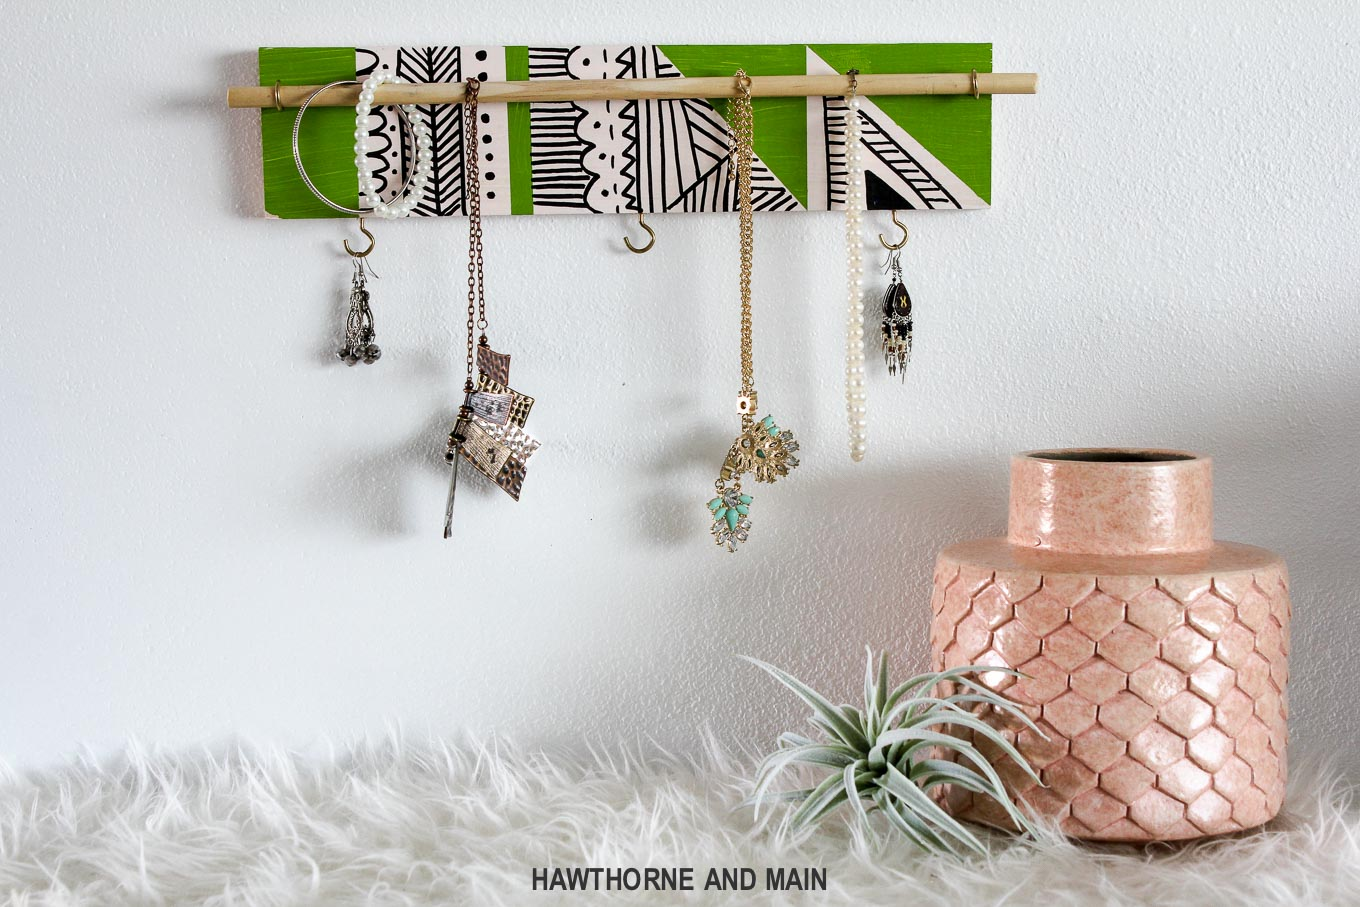 Loving this cute DIY jewelry holder. It looks like it is so easy to make with just a few supplies.